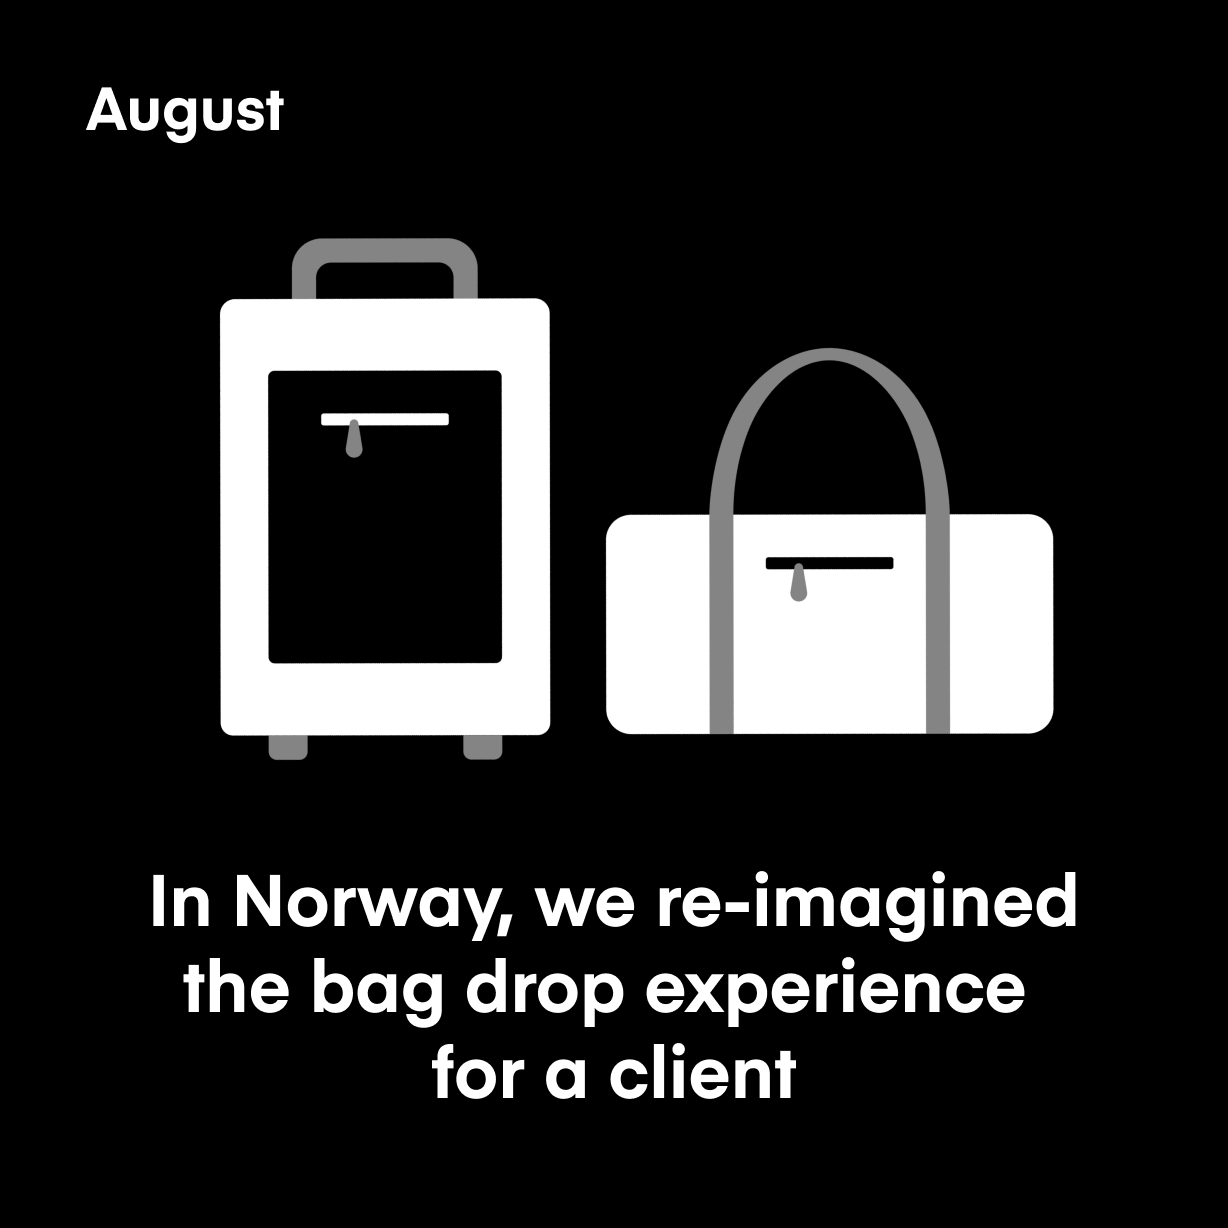 In Norway, we re-imagined the bag drop experience for a client